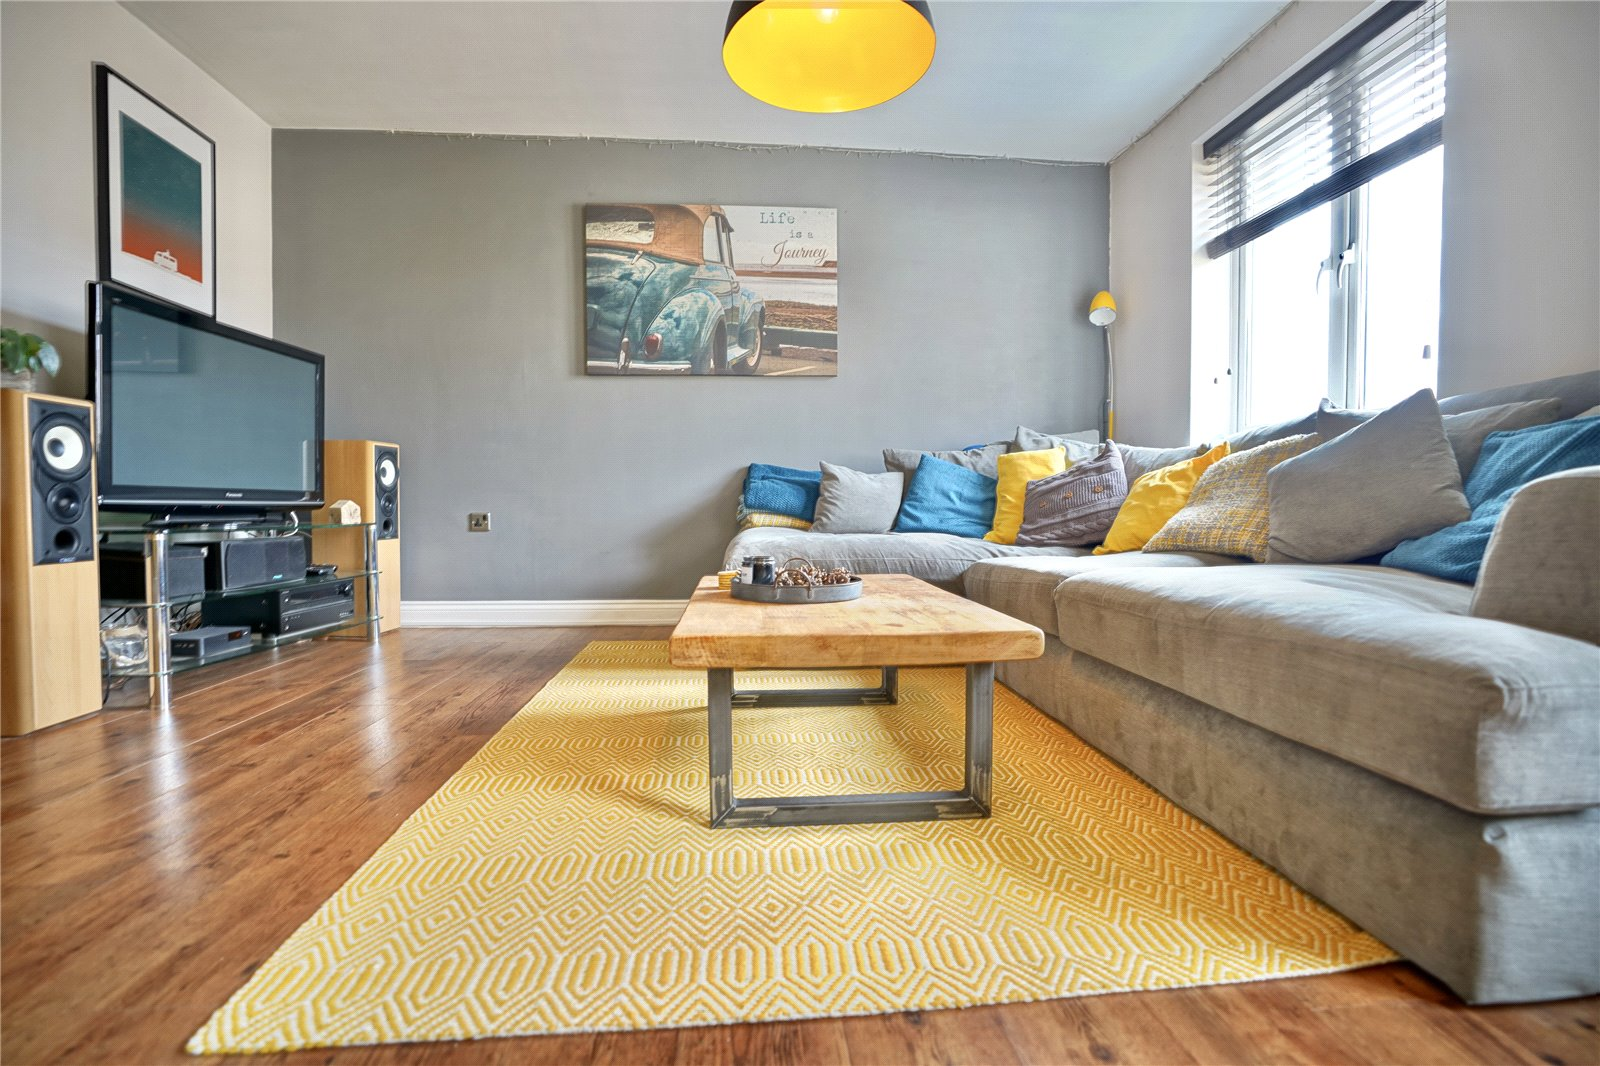 2 bed apartment for sale in St. Ives, PE27 5QL  - Property Image 5